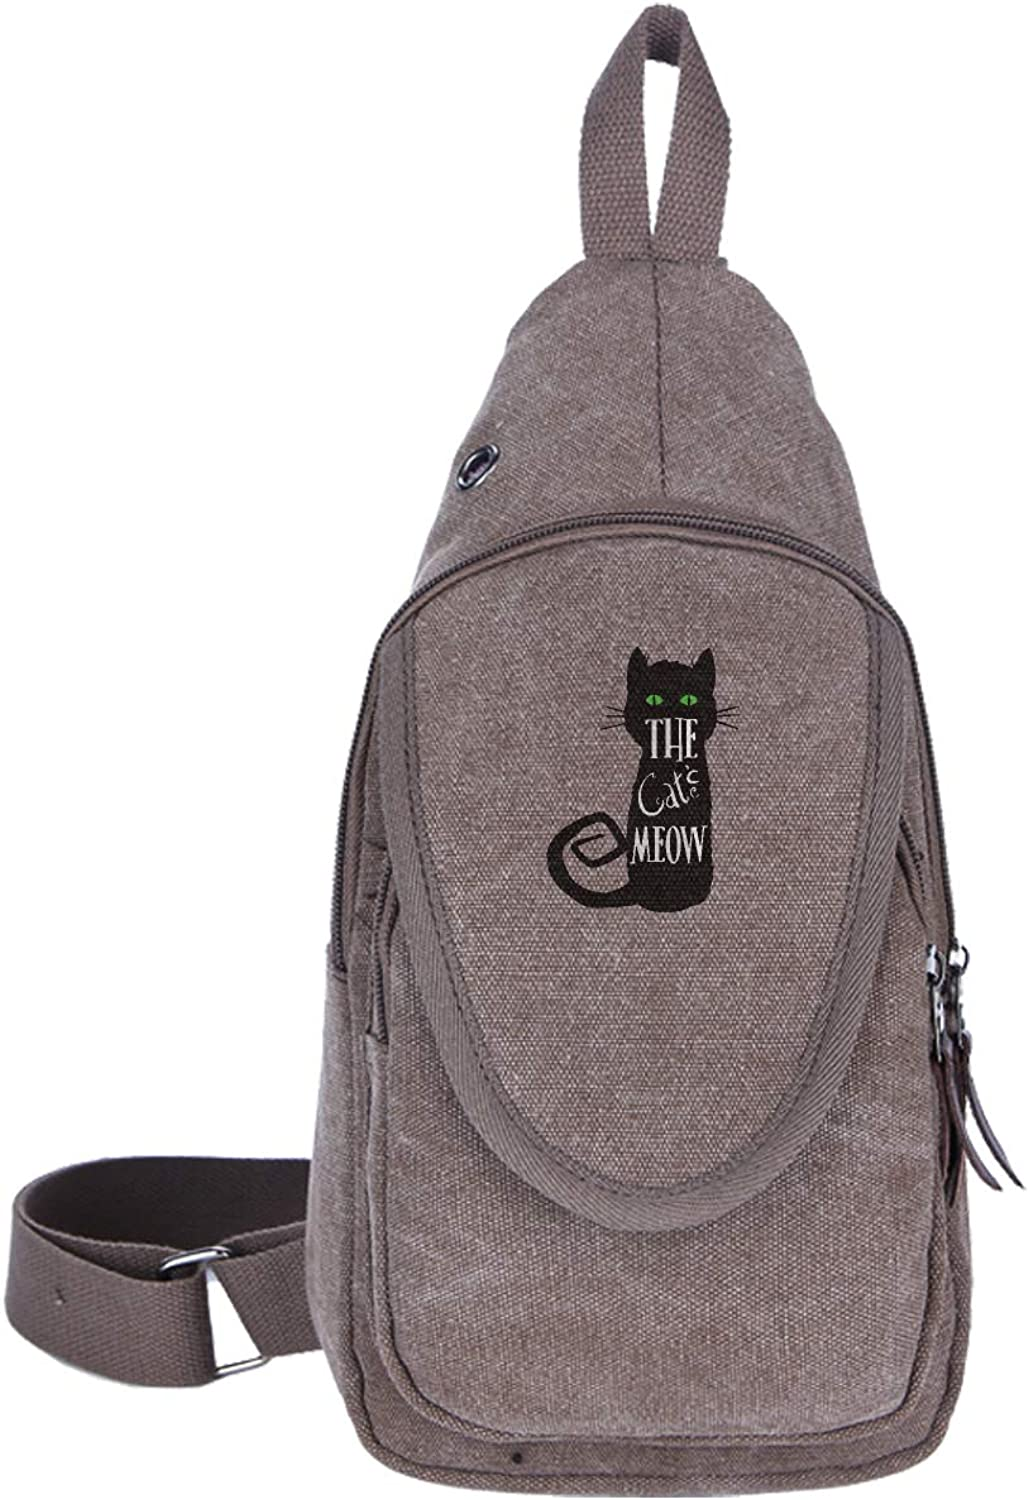 Unisex Canvas Small Backpack Cat Meow Chest Shoulder Bag, Lightweight Crossbody Daypacks for Bicycle Sport Hiking Travel Camping